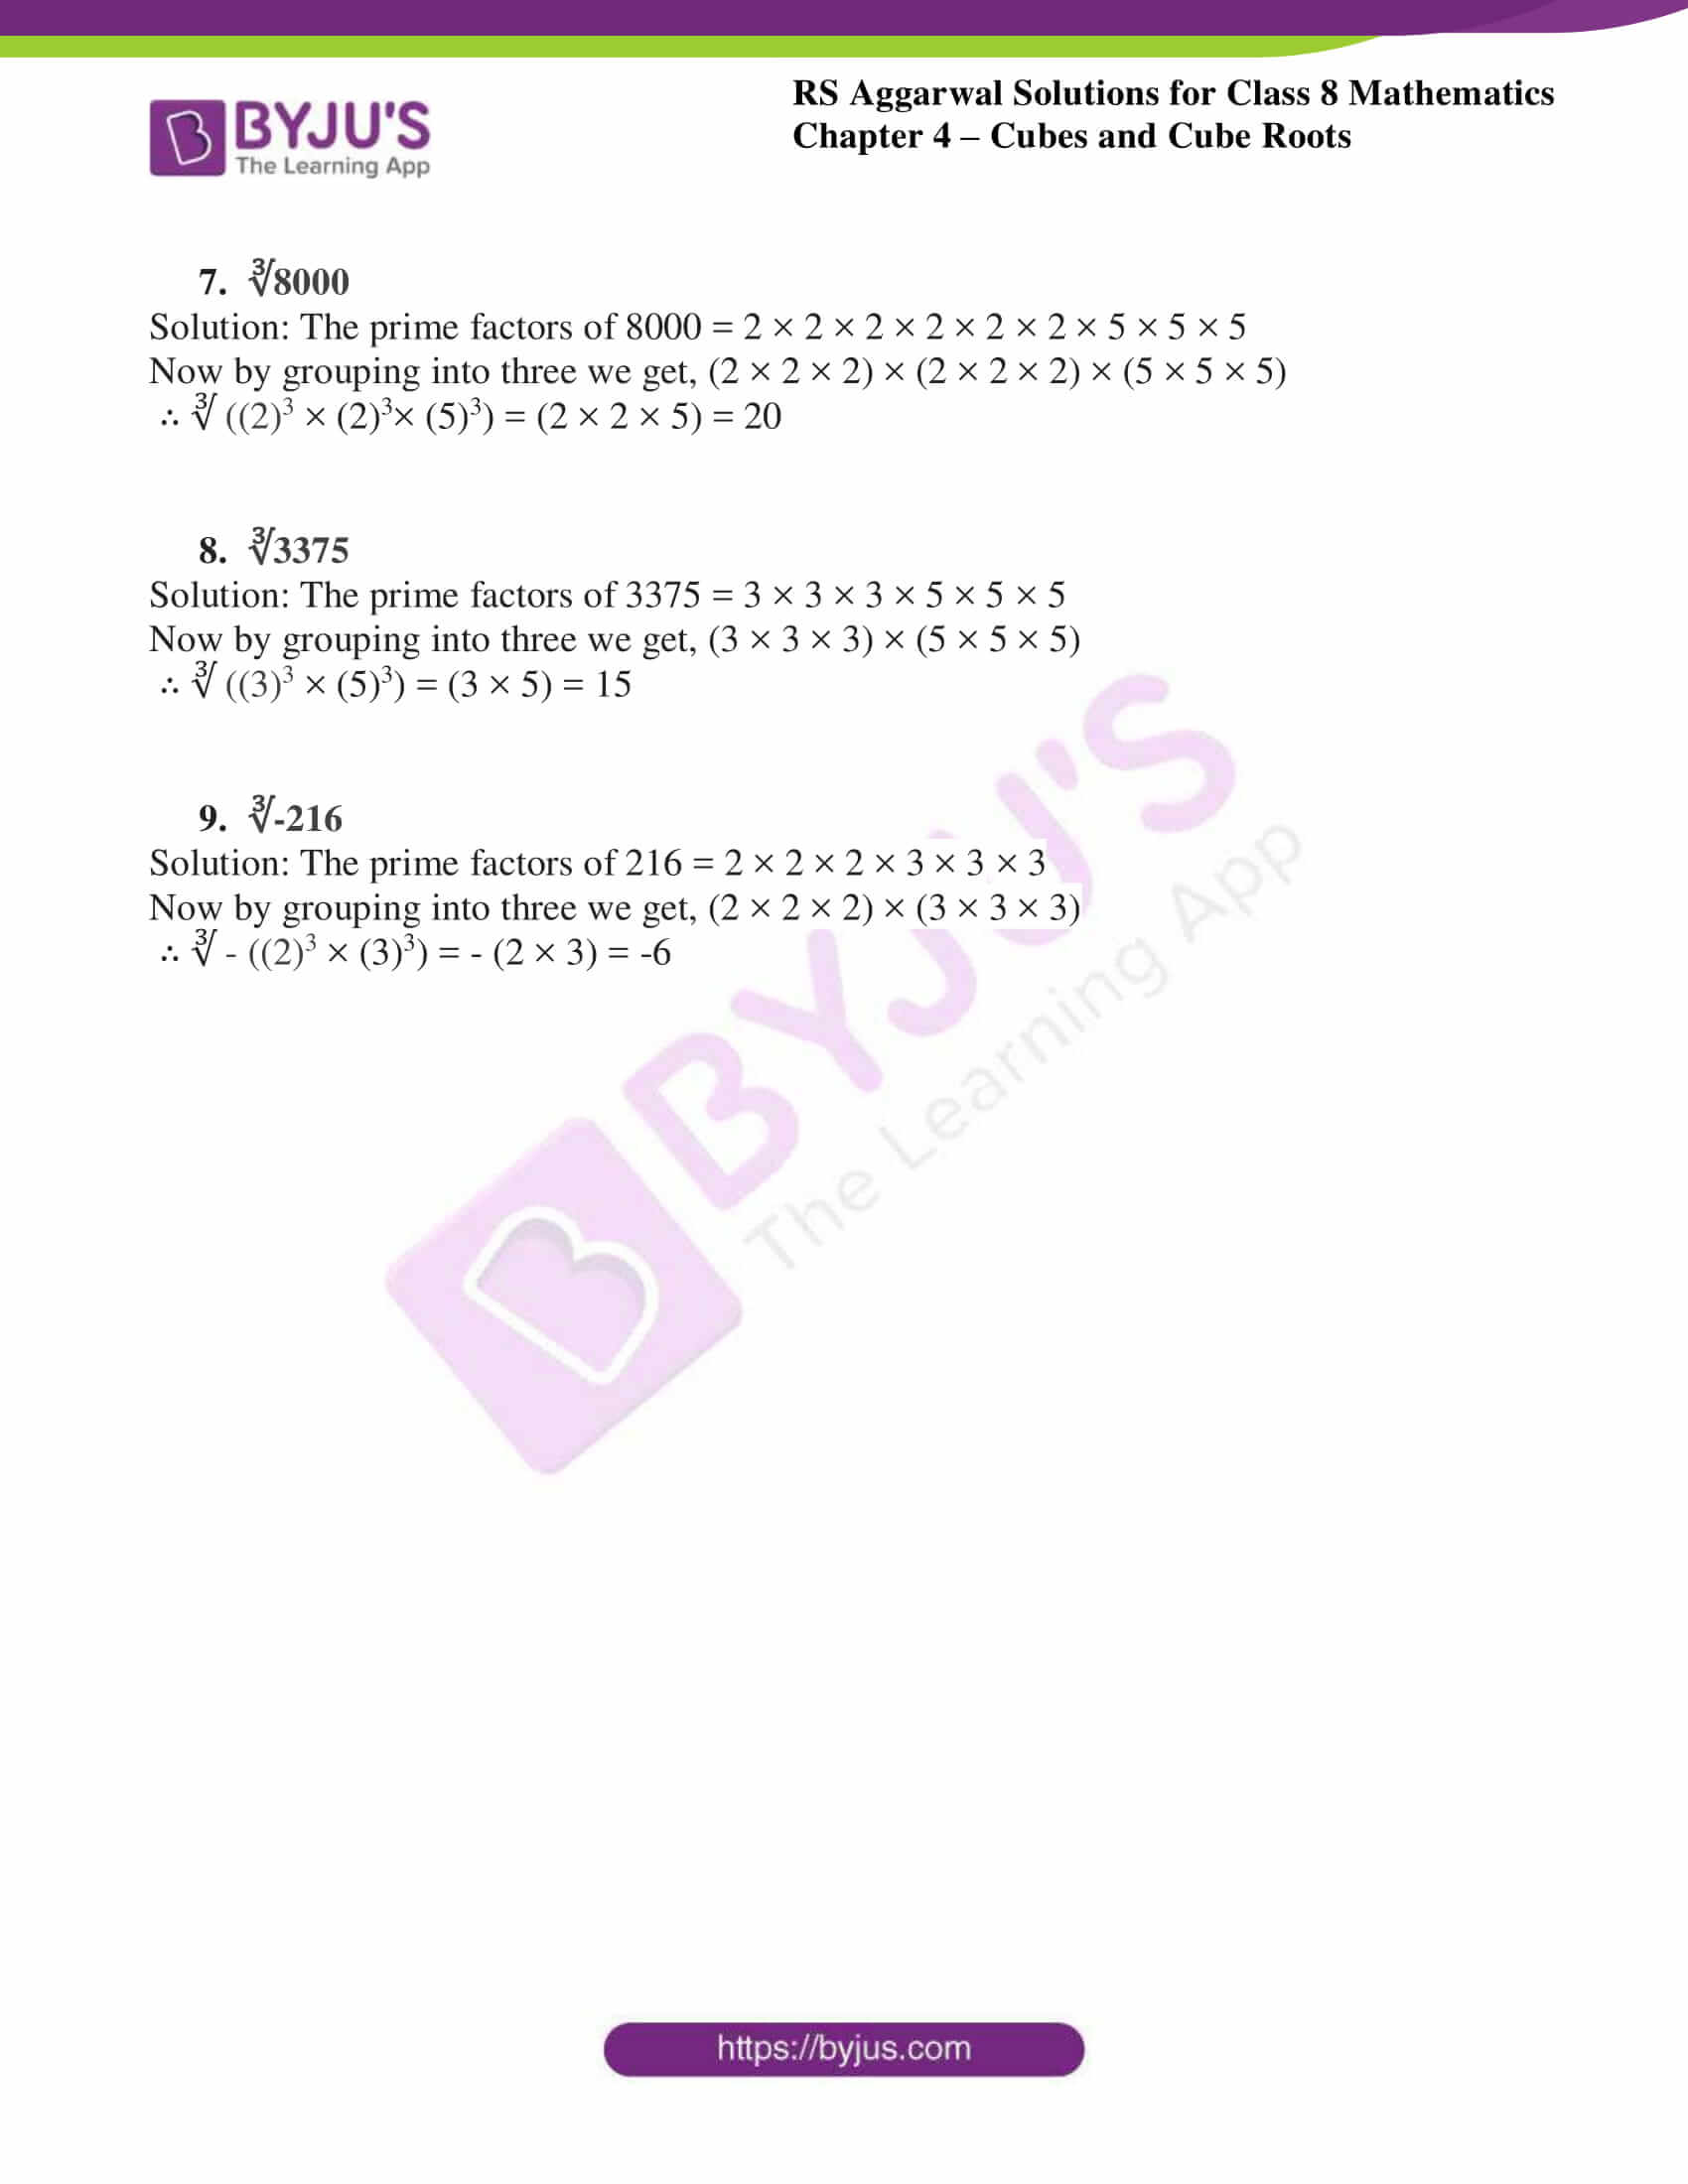 rs aggarwal solutions class 8 maths chapter 4c